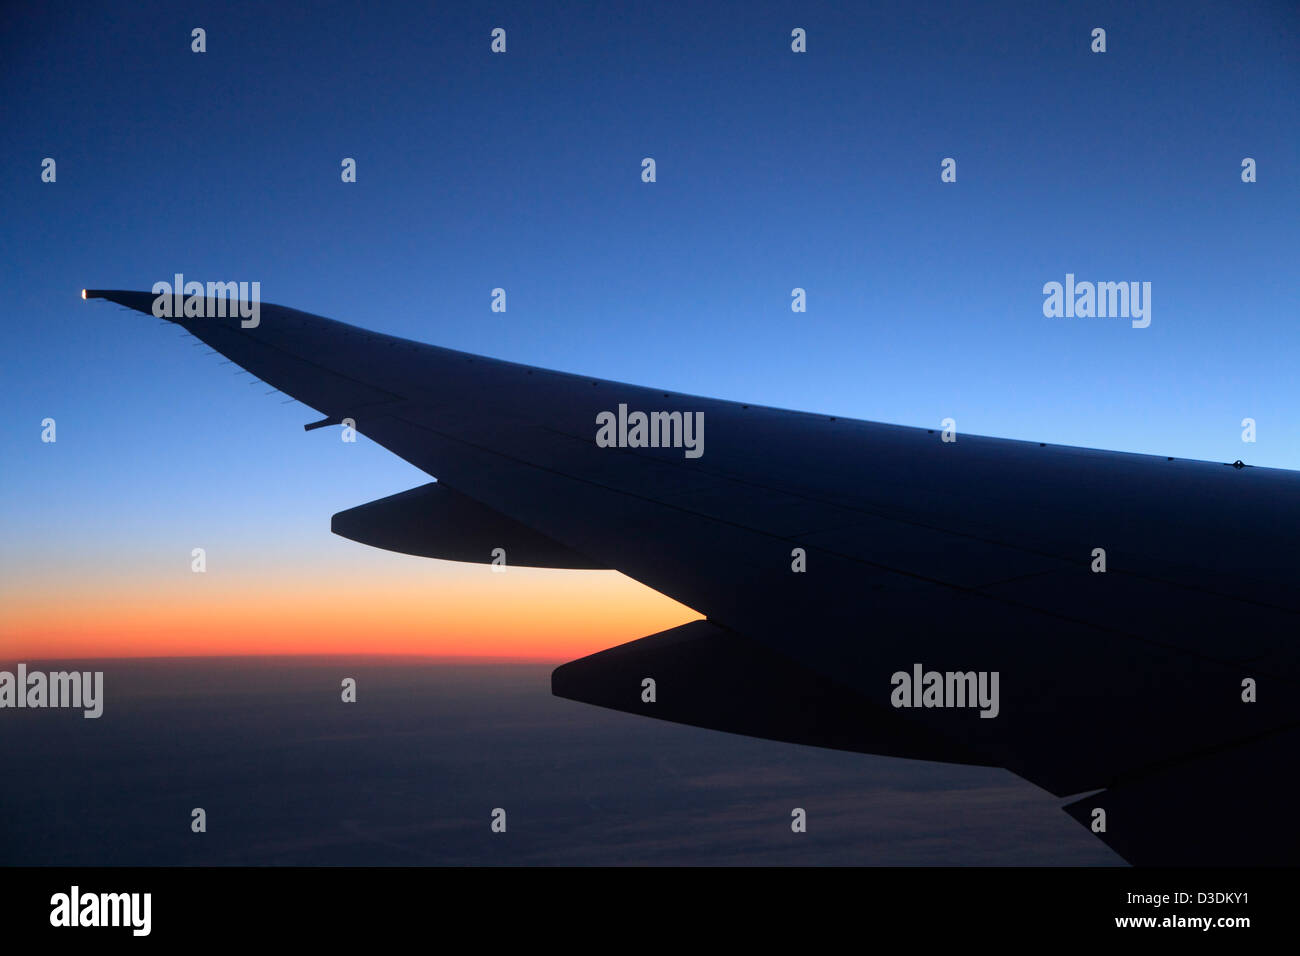 Boeing 777-200 jet airplane wing in flight - Stock Image